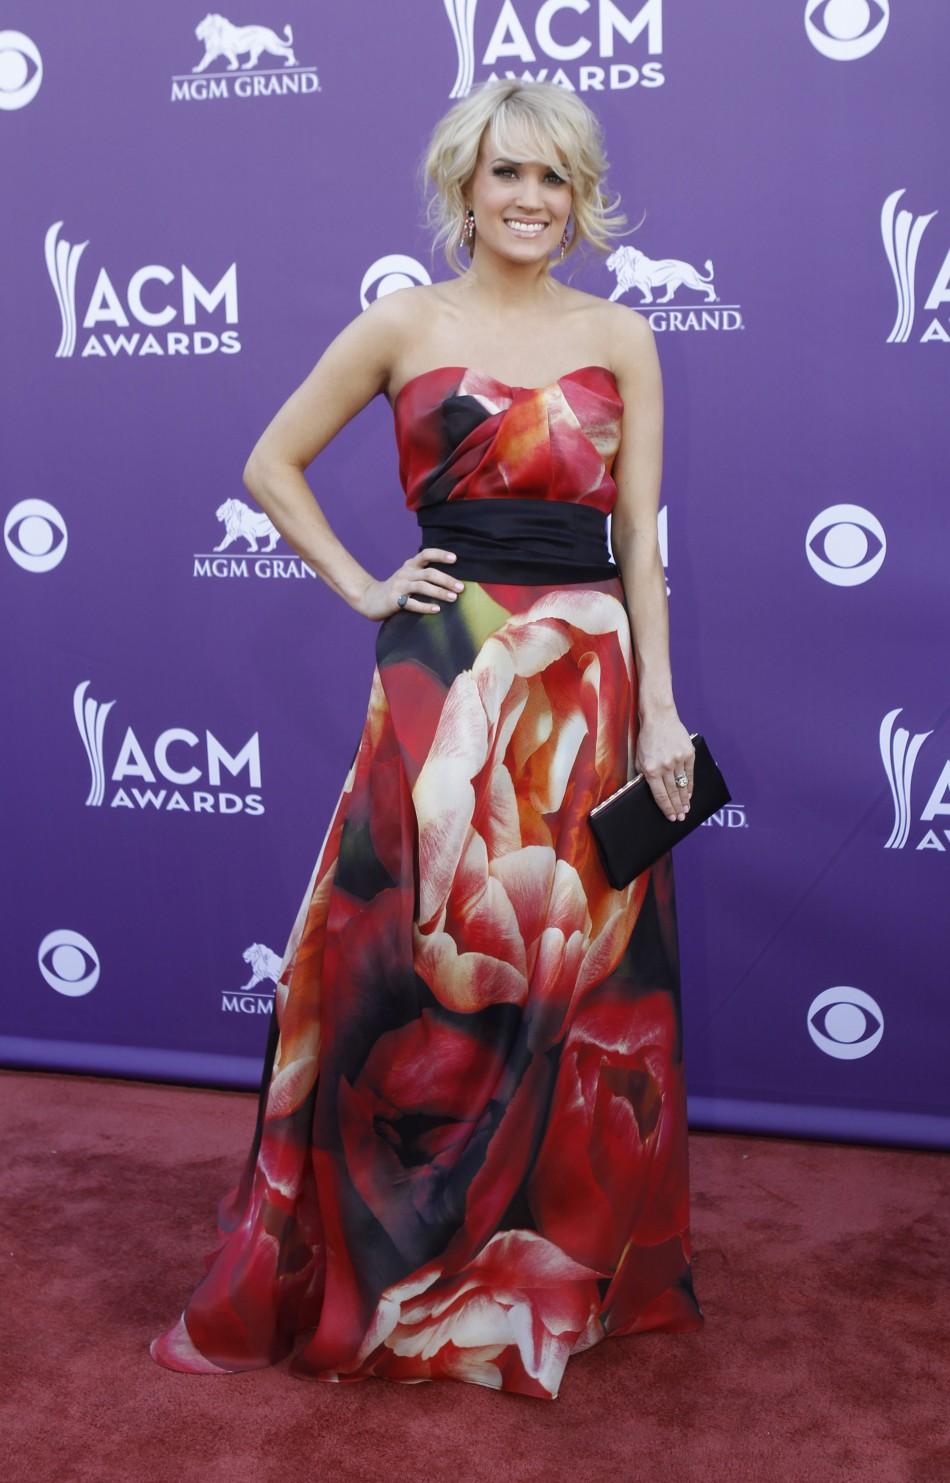 Singer Carrie Underwood arrives at the 48th ACM Awards in Las Vegas, April 7, 2013.